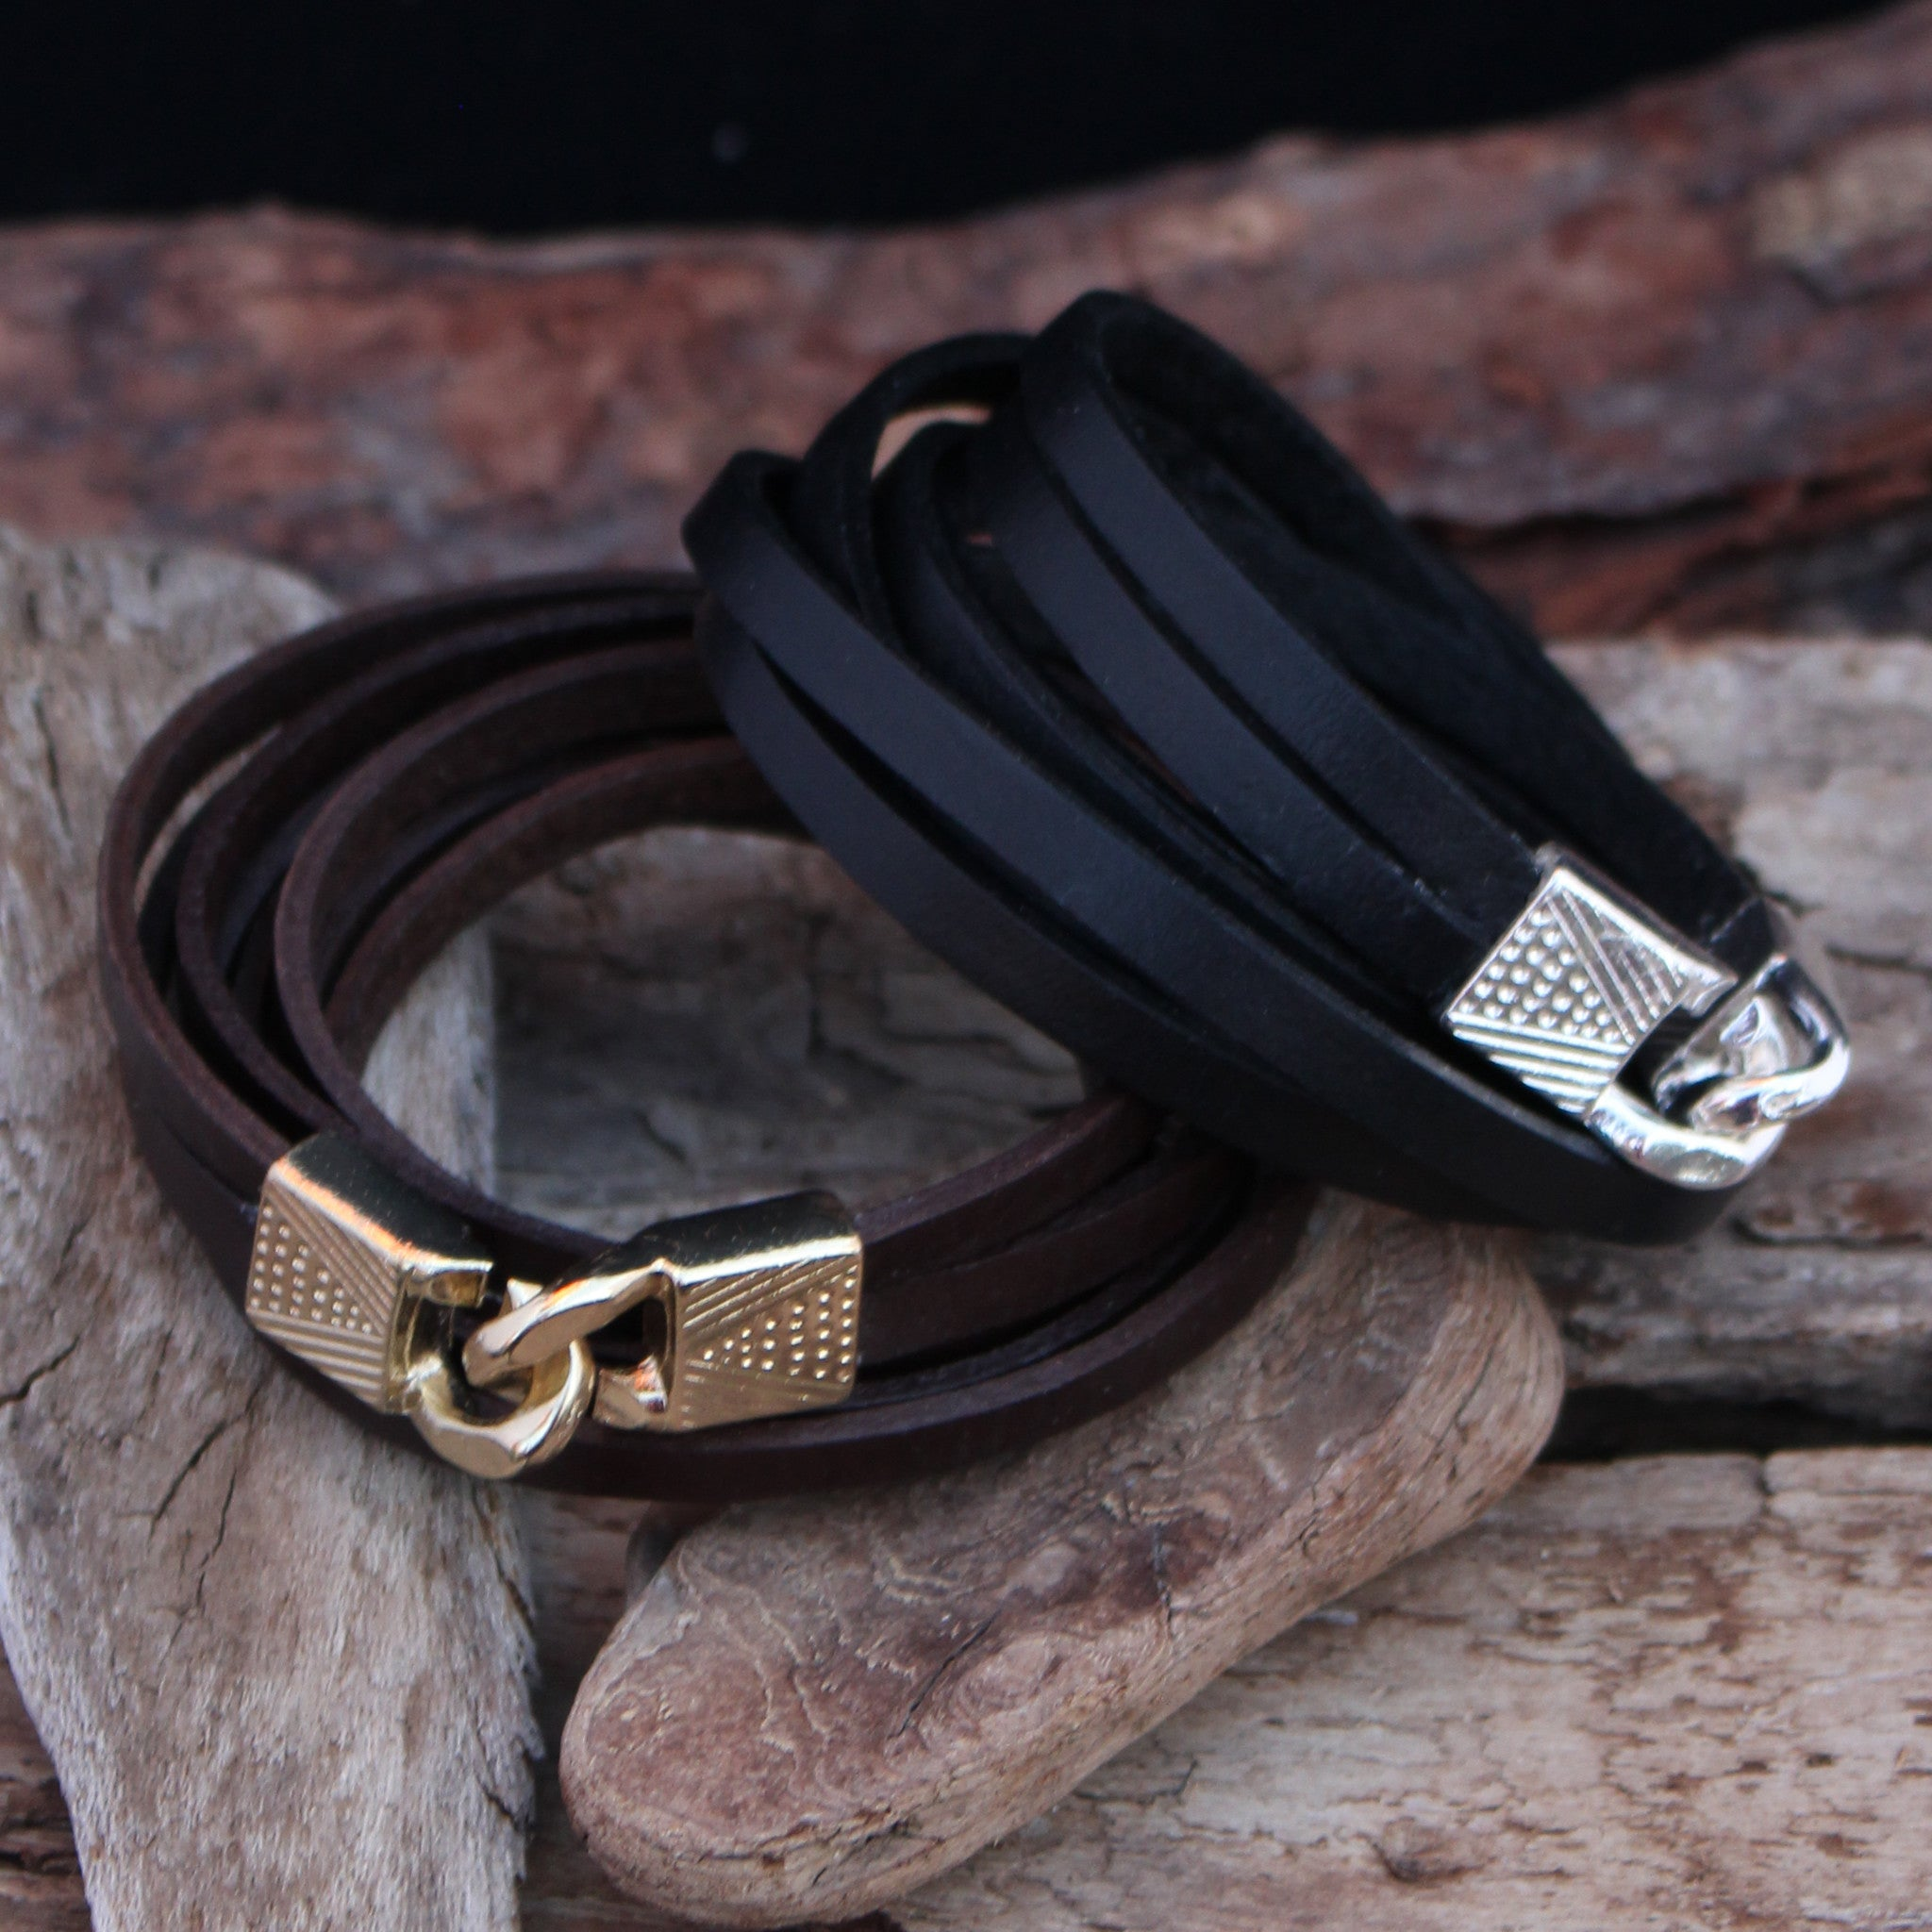 Leather Wrap Bracelet - Brown - small to medium - Save 40%